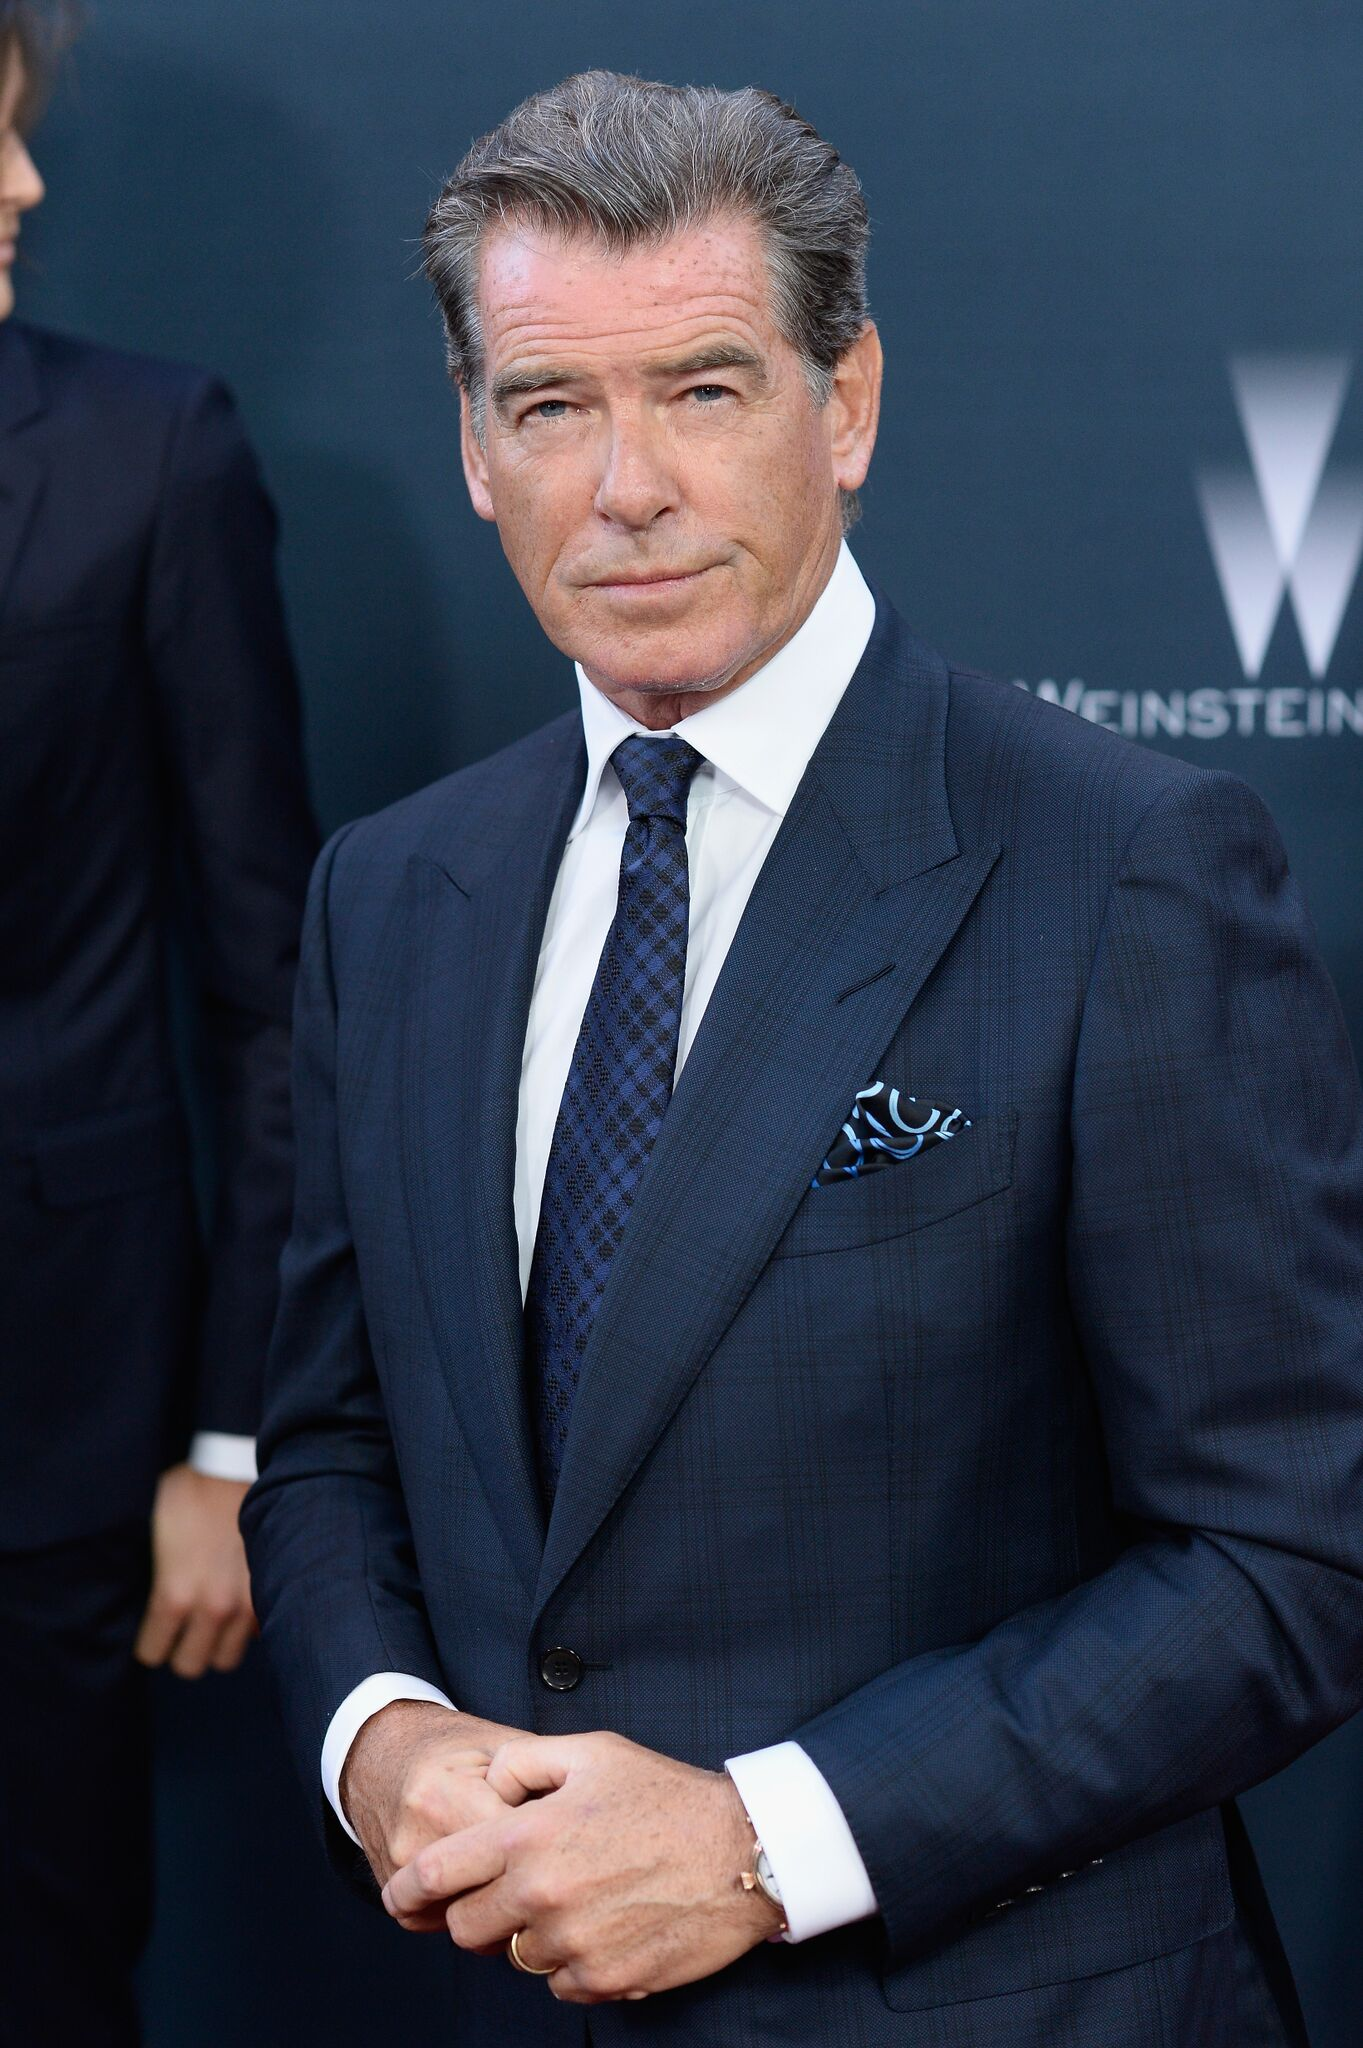 Pierce Brosnan le 17 août 2015 à Los Angeles, Californie | Photo: Getty Images